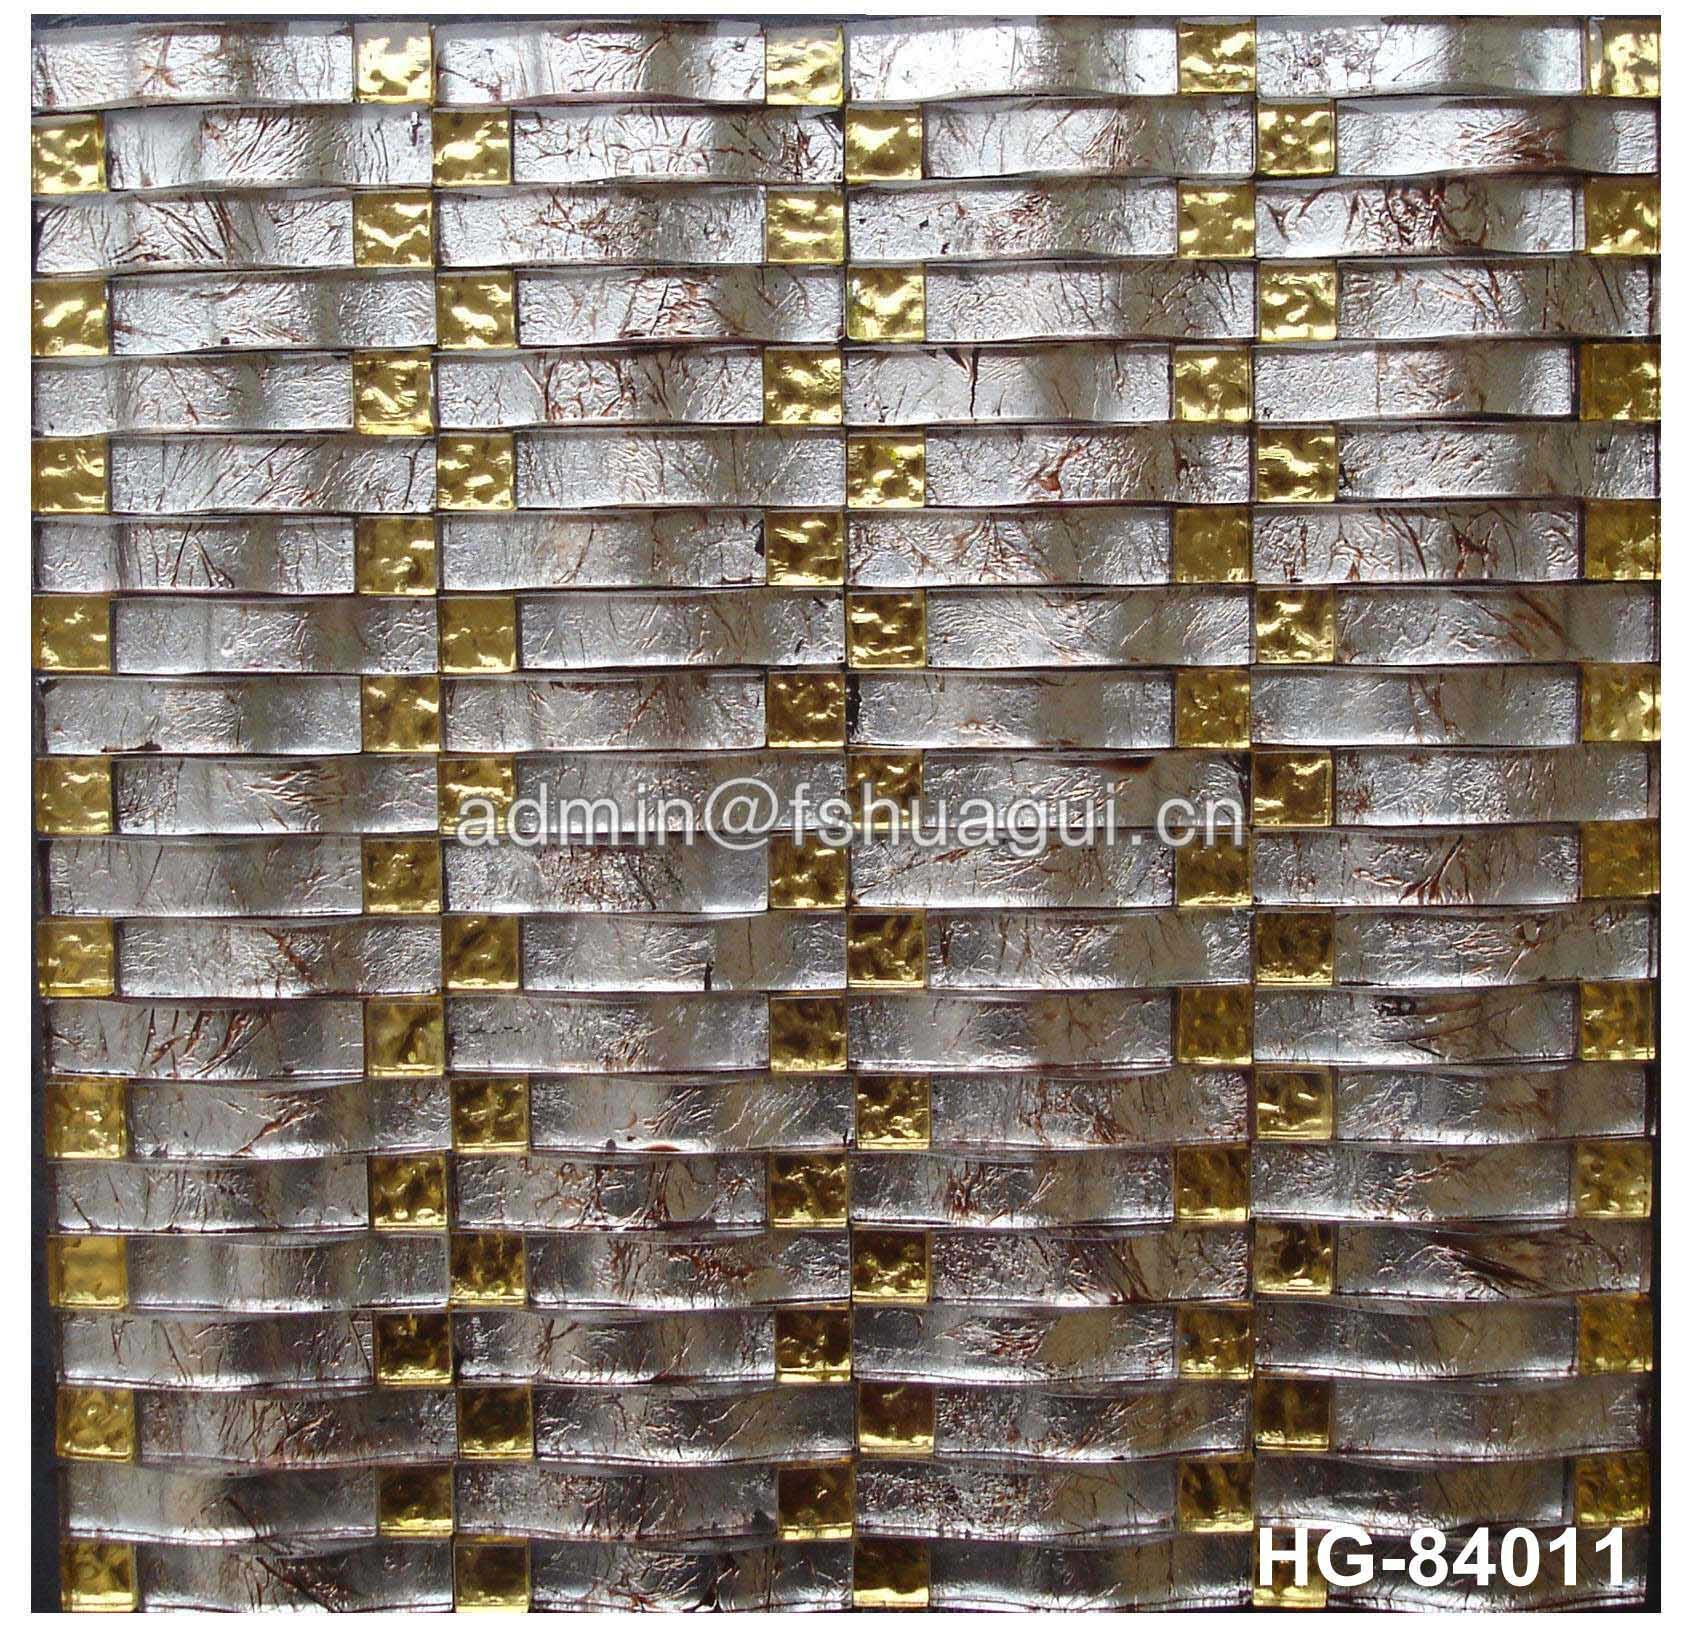 China manufacturer of 3D wave crystal glass mosaic tile for kitchen backsplash